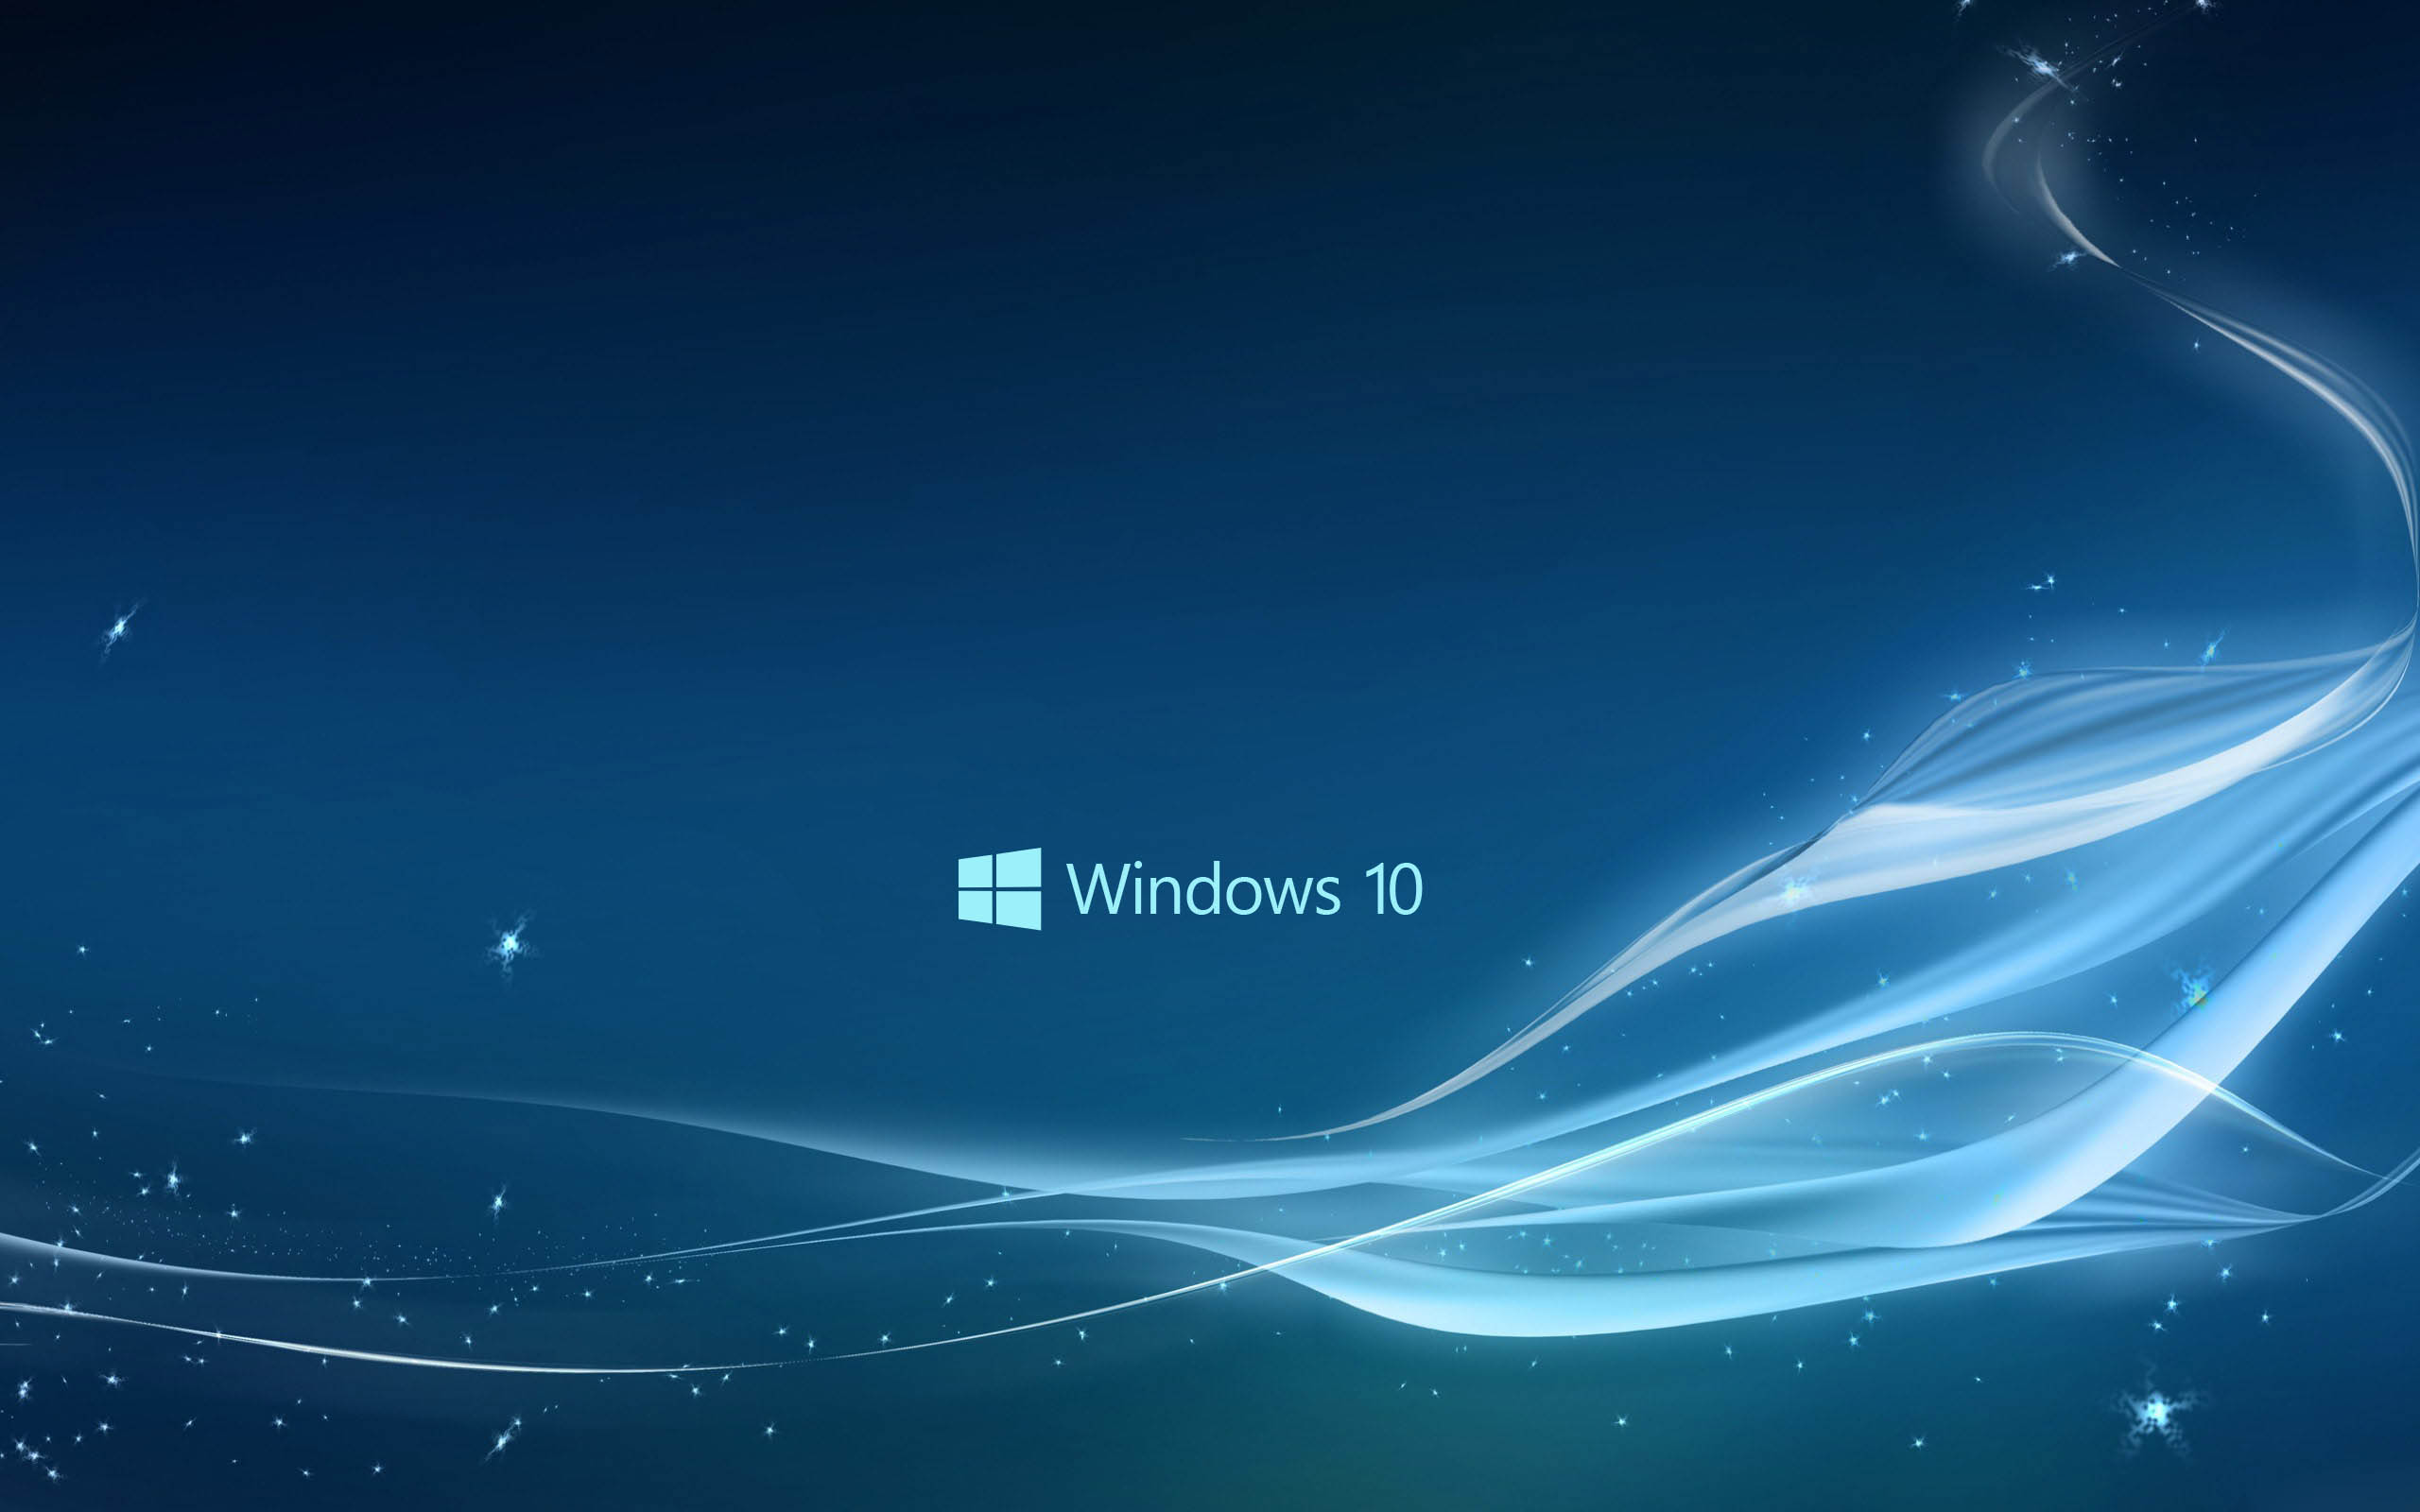 Windows 10 wallpapers pictures images for Window background